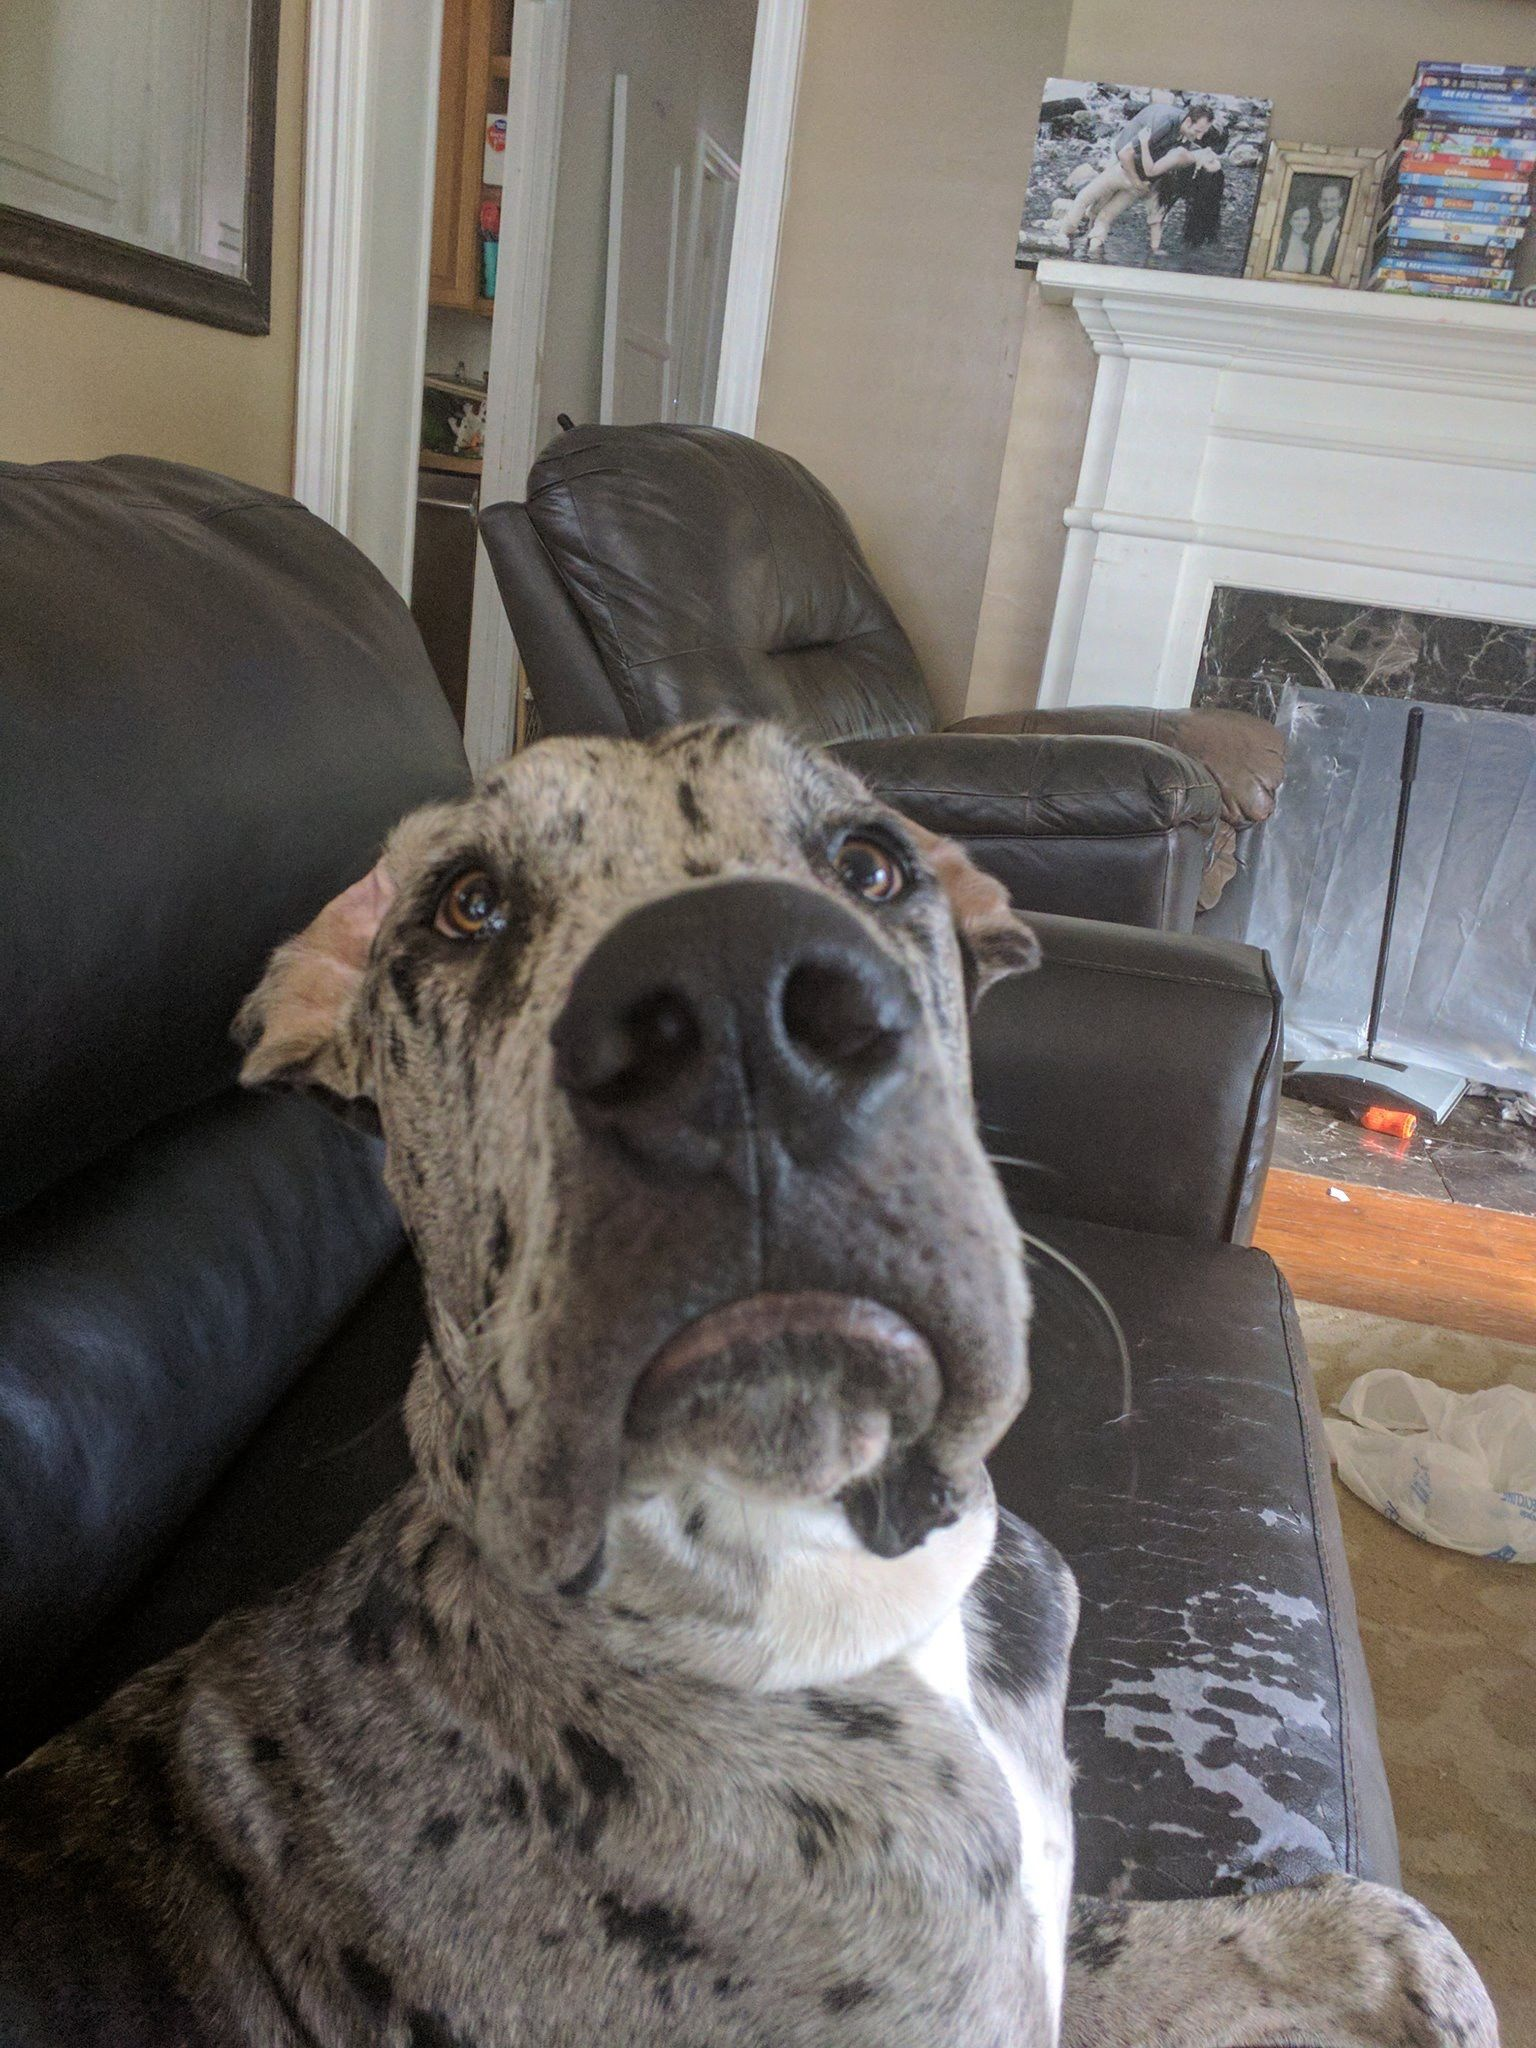 Pin By Bonnie Nordlund On Great Dane Dogs Great Dane Dogs Baby